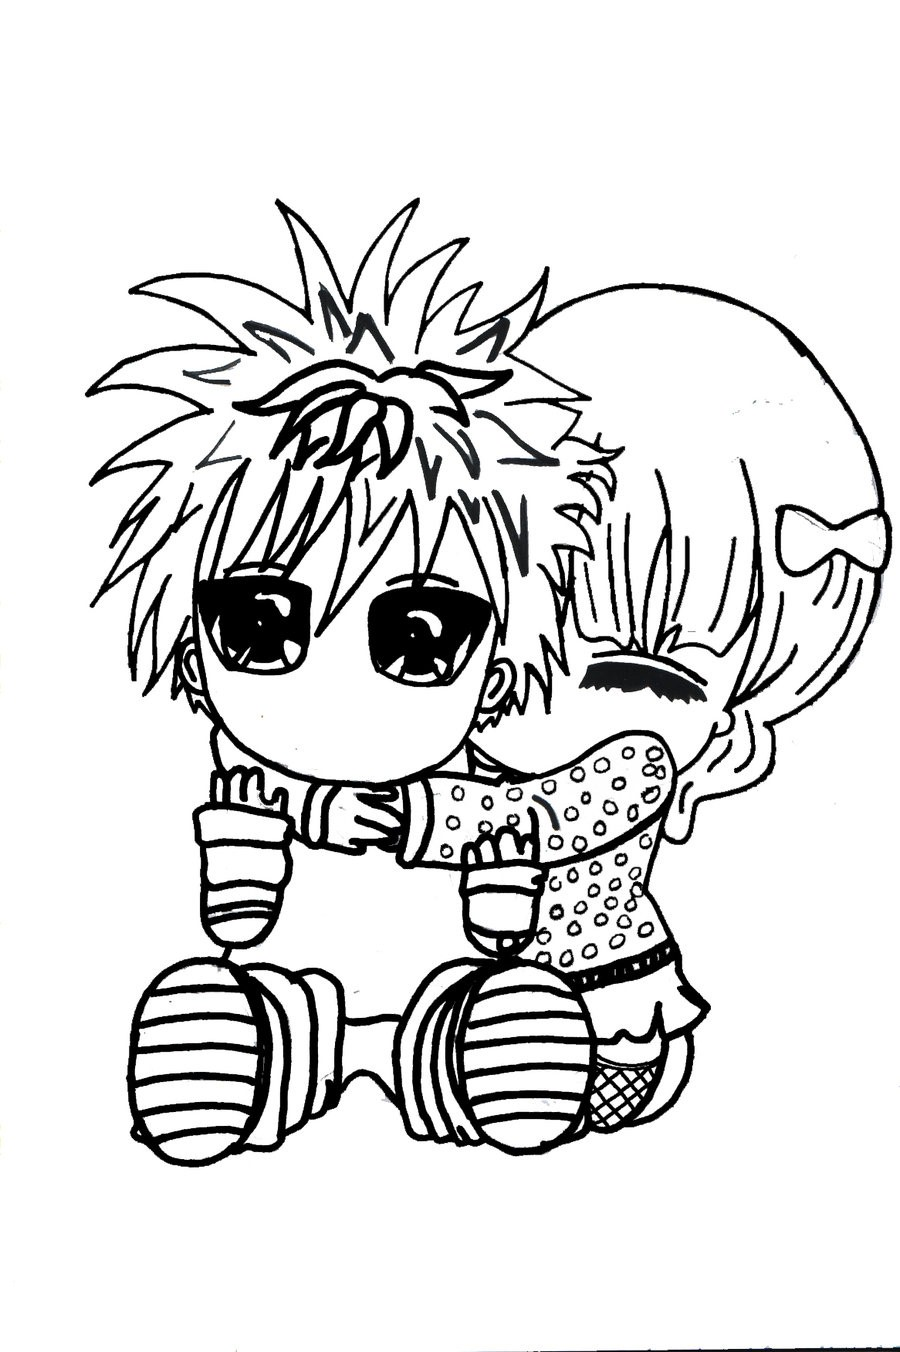 Cute Chibi Couple Sketches Our Healthy Tipsblogspotcom